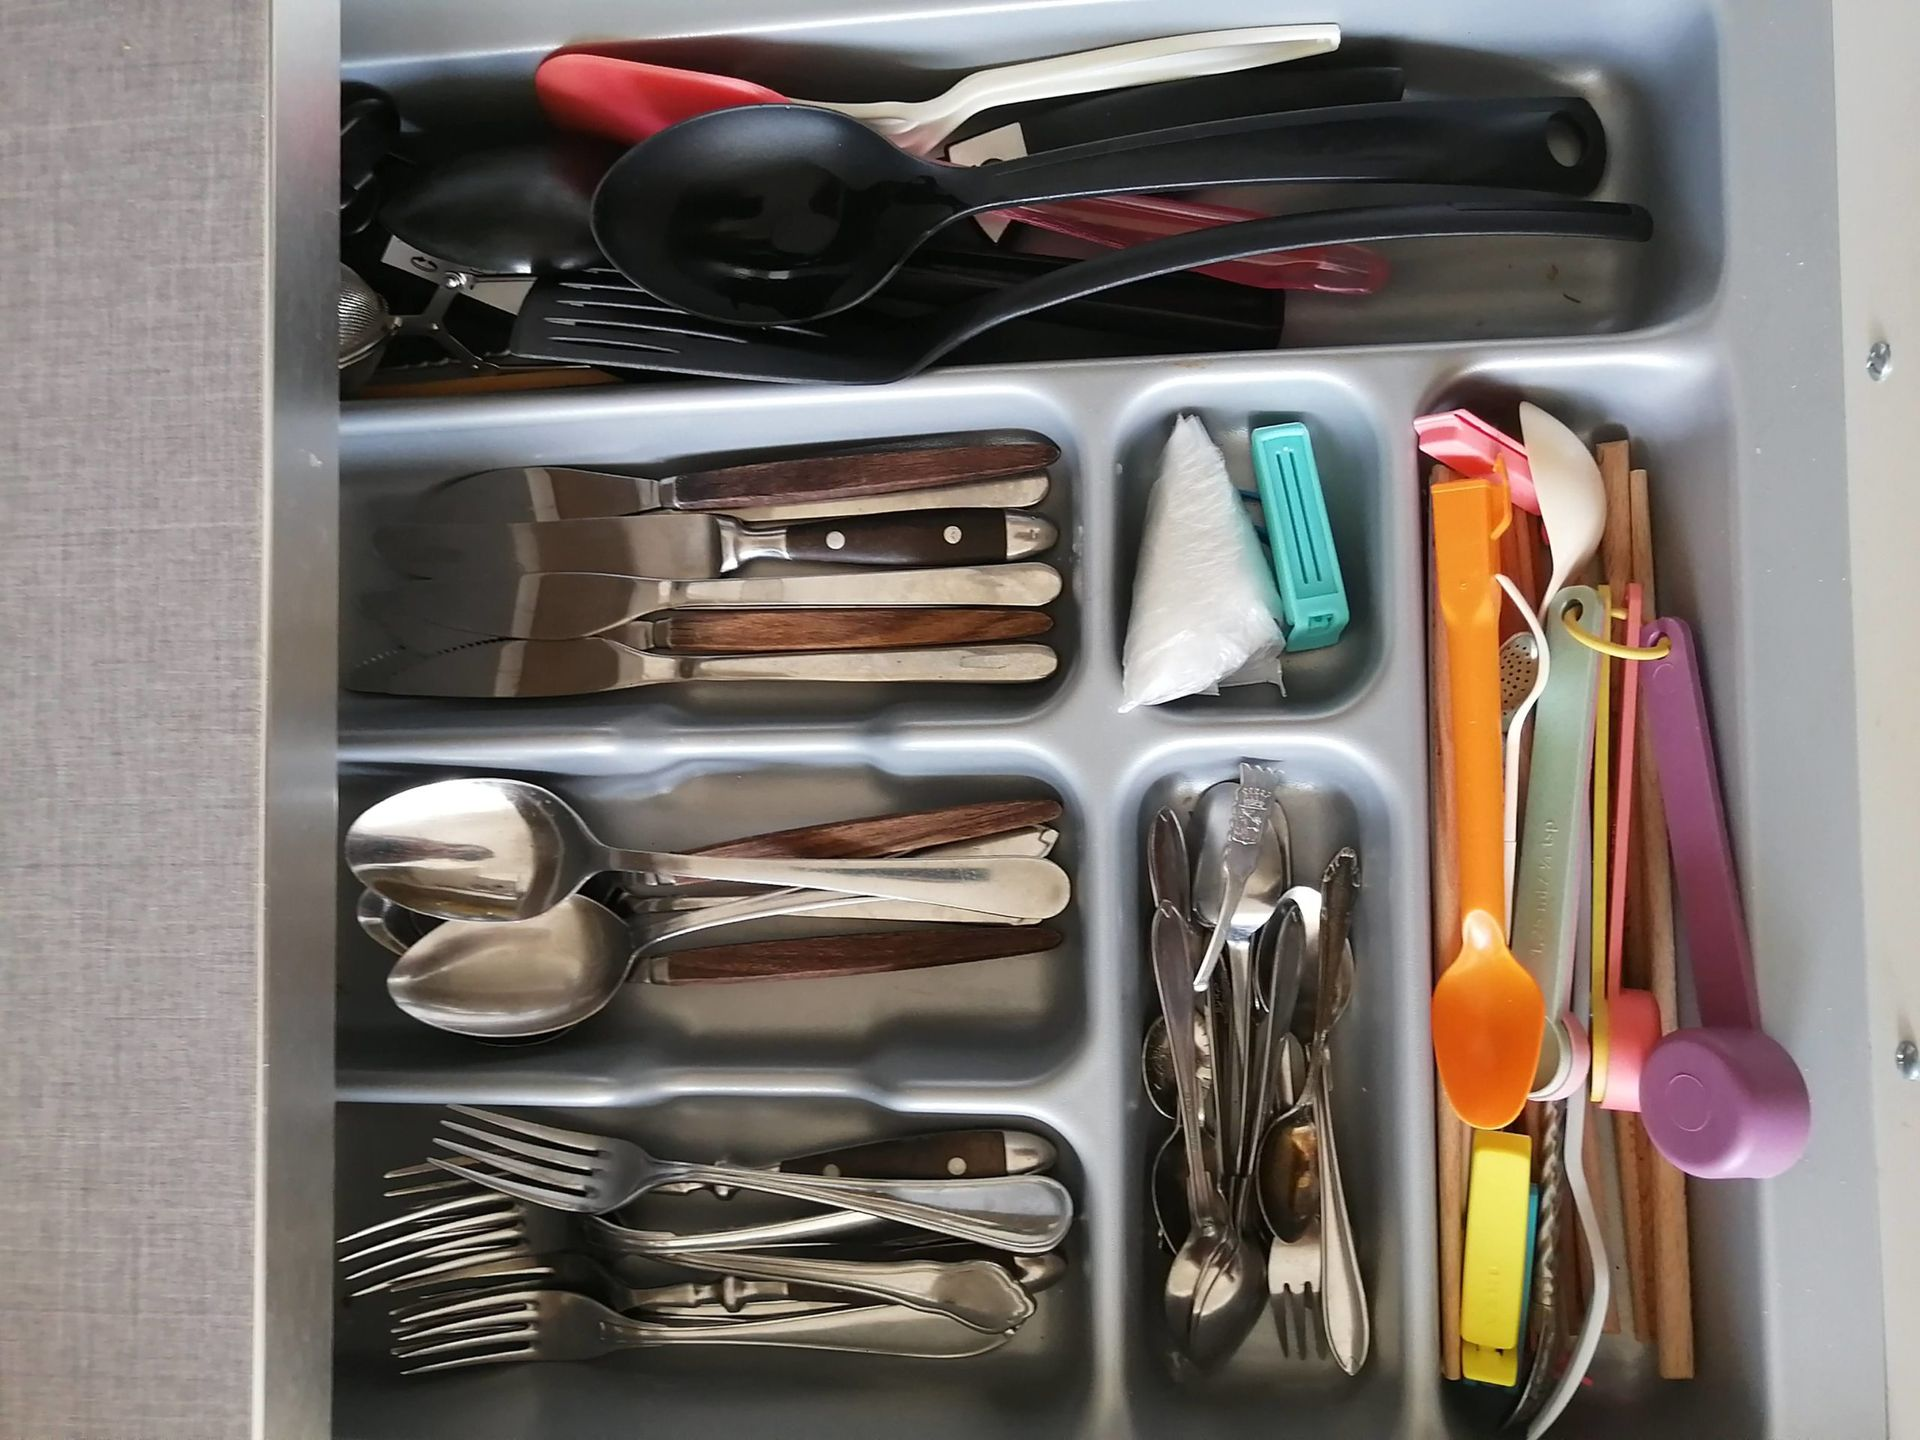 A drawer of cutlery